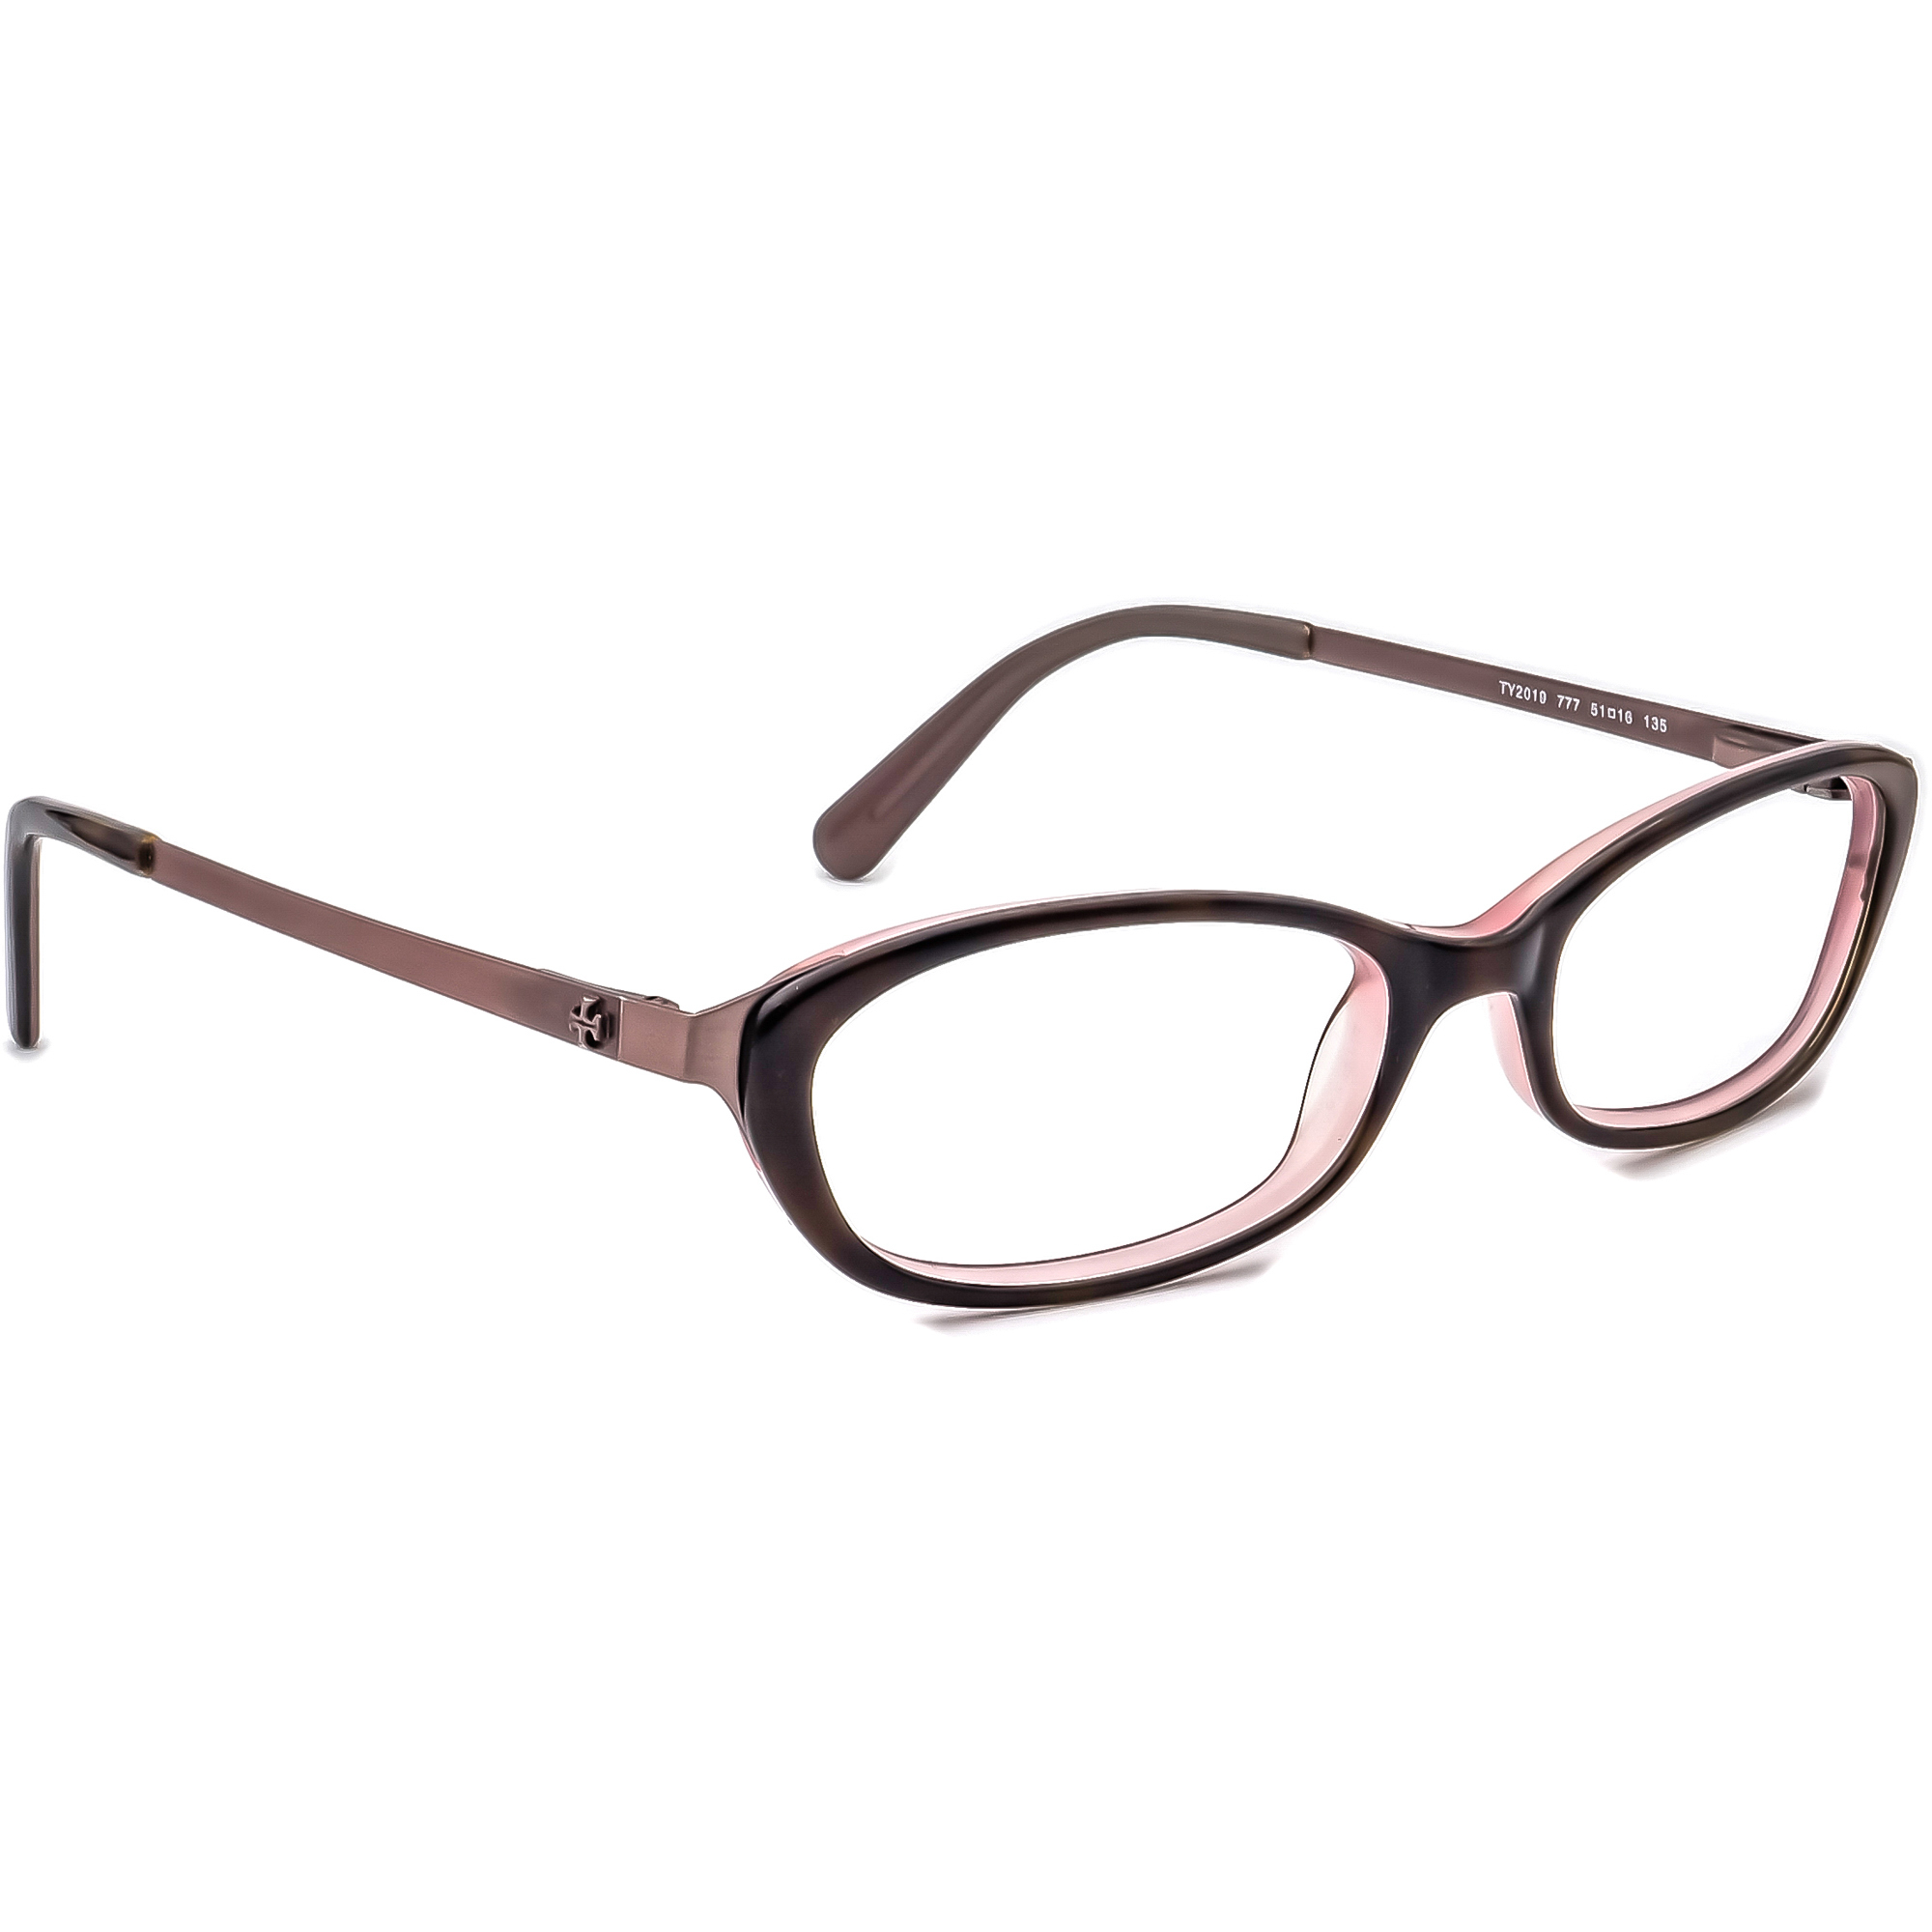 Tory Burch TY2019 777 Eyeglasses